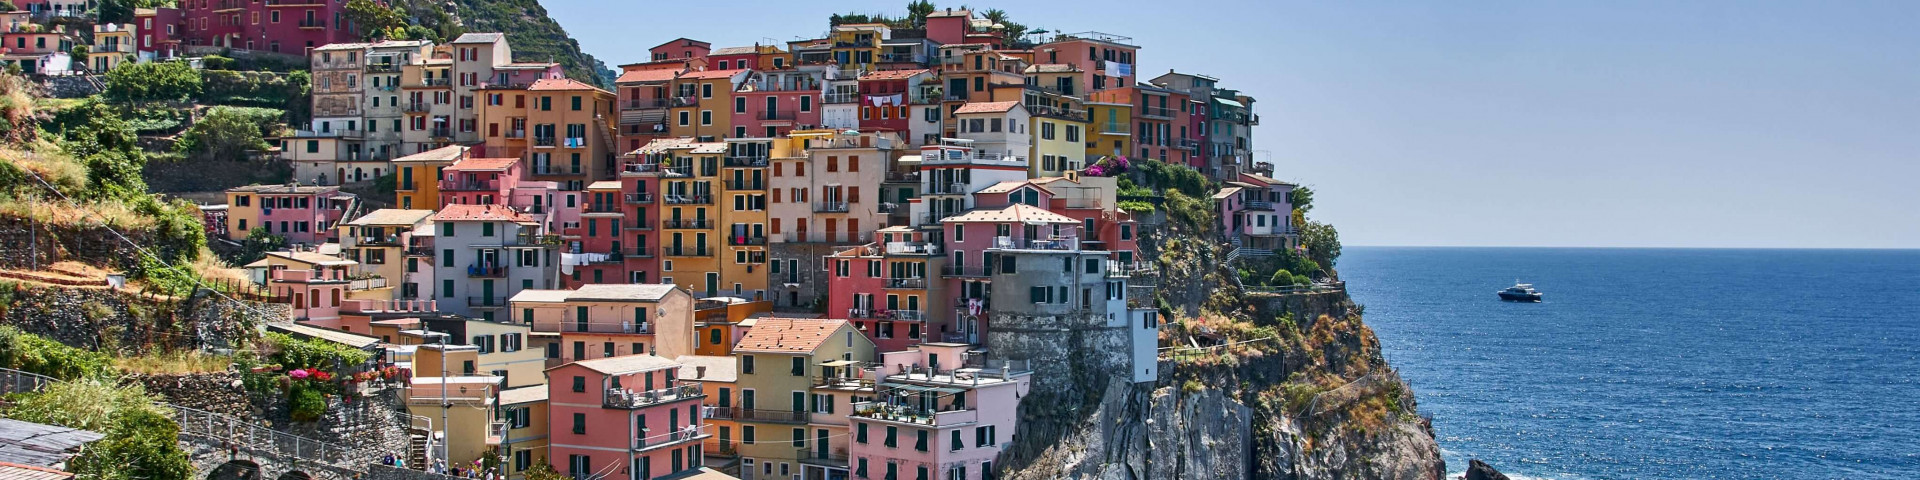 The colourful houses in Manarola, Cinque Terre